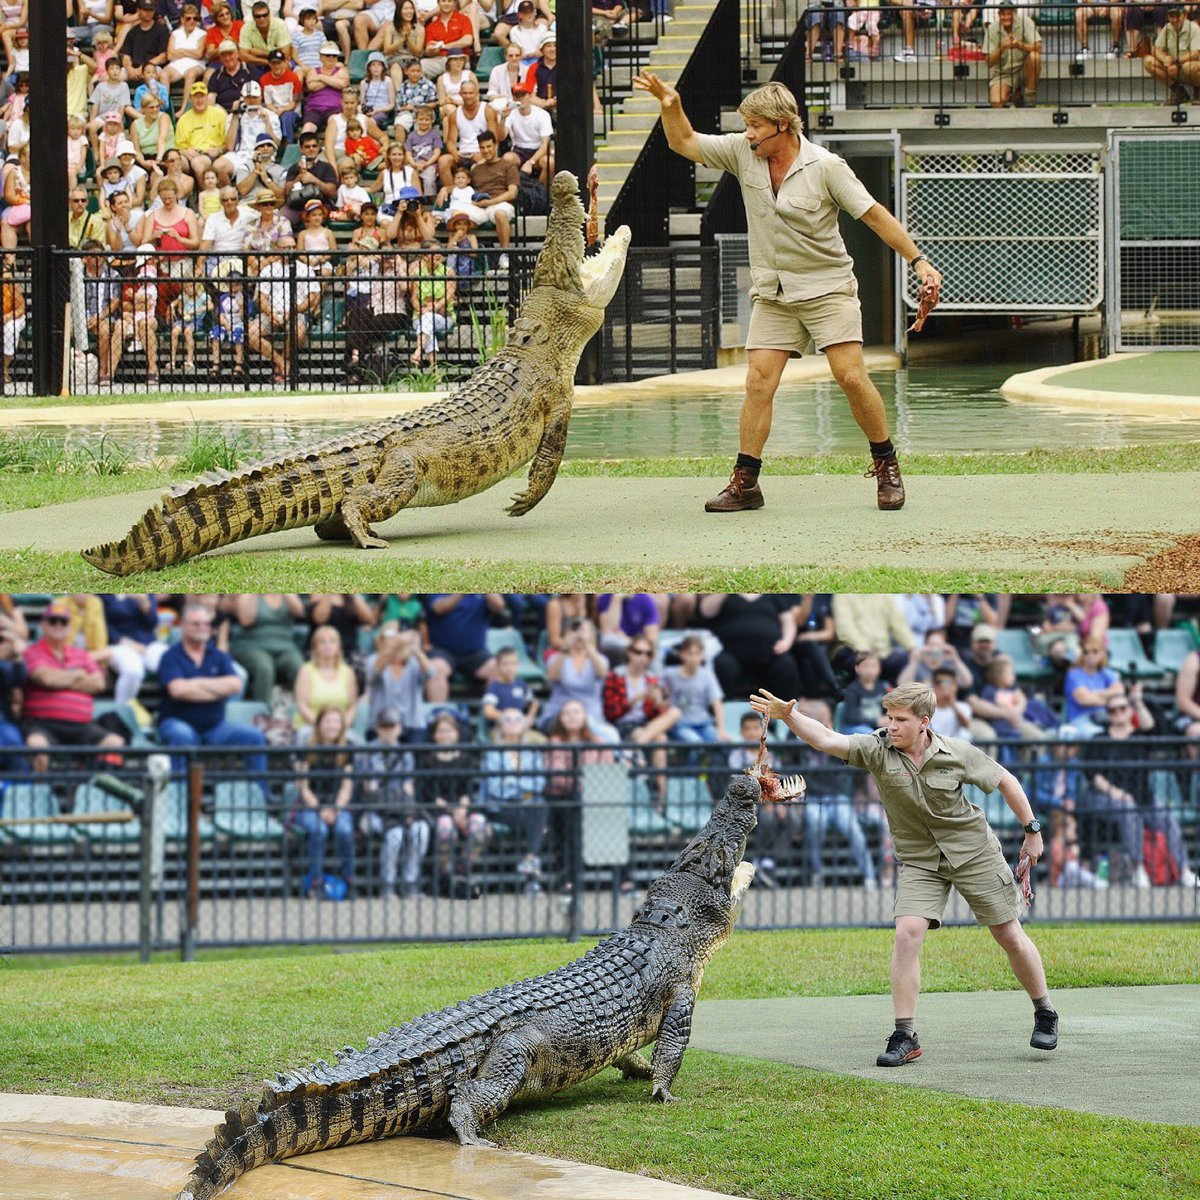 Dad and me feeding Murray... same place, same croc - two photos 15 years apart ❤️🐊